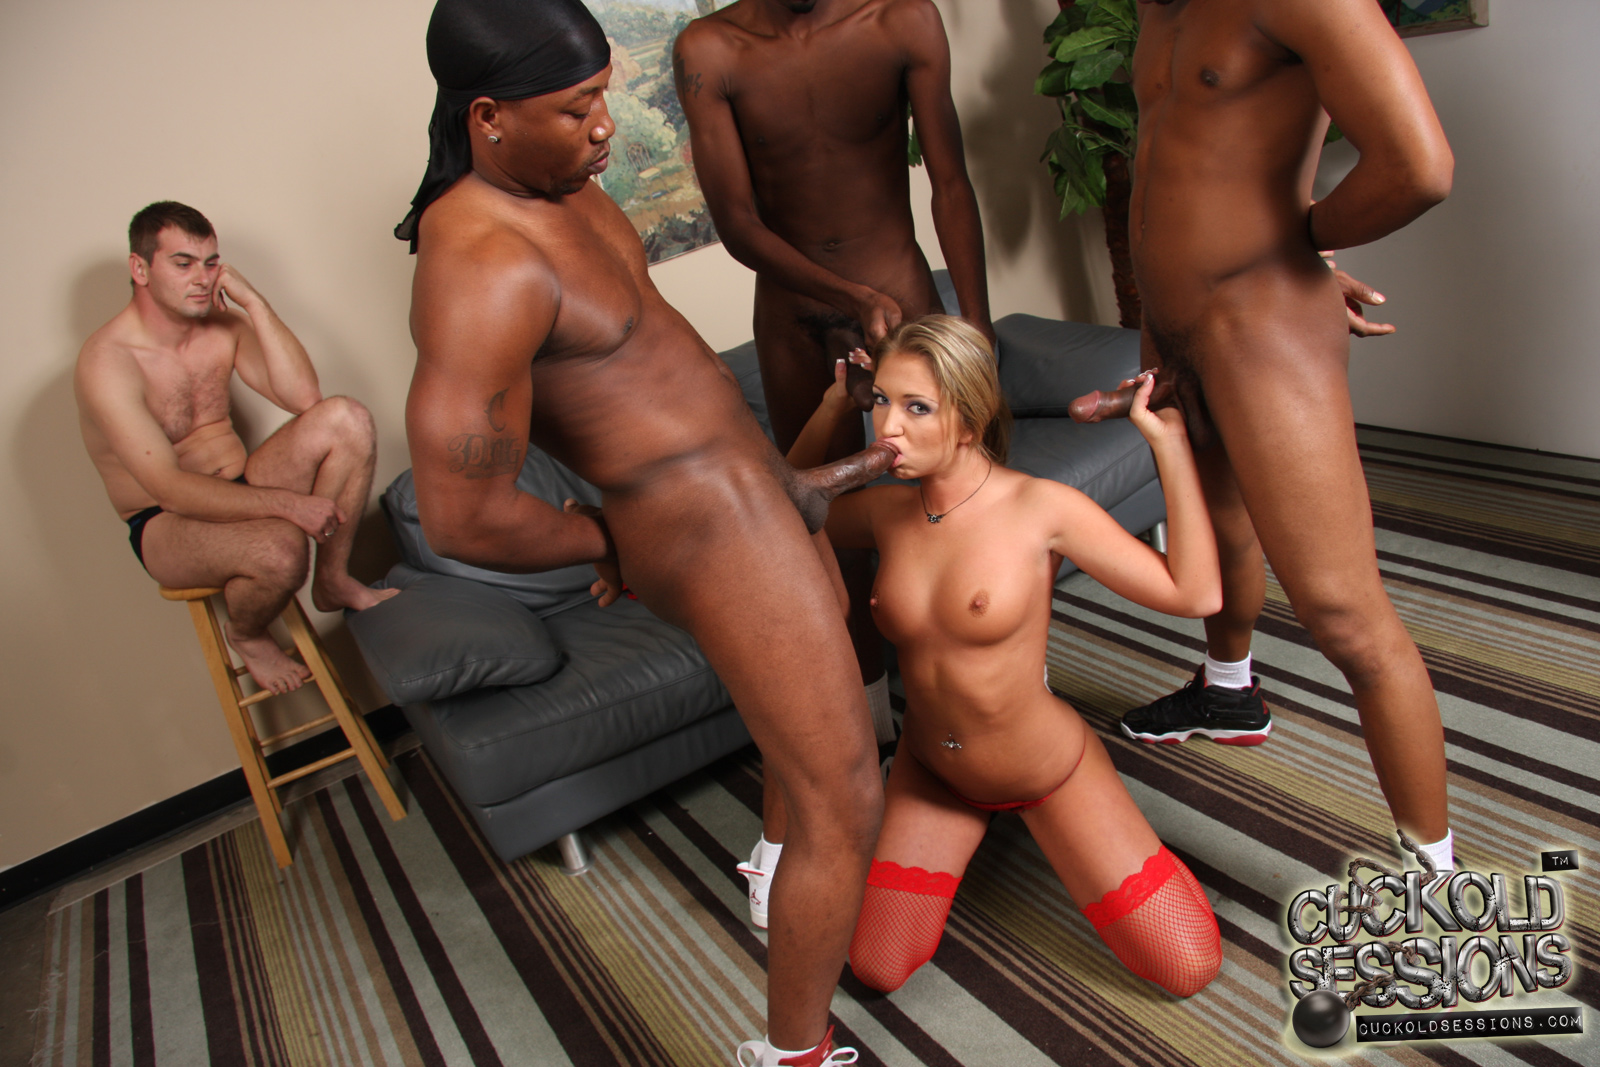 galleries cuckoldsessions content jaelyn fox pic 15